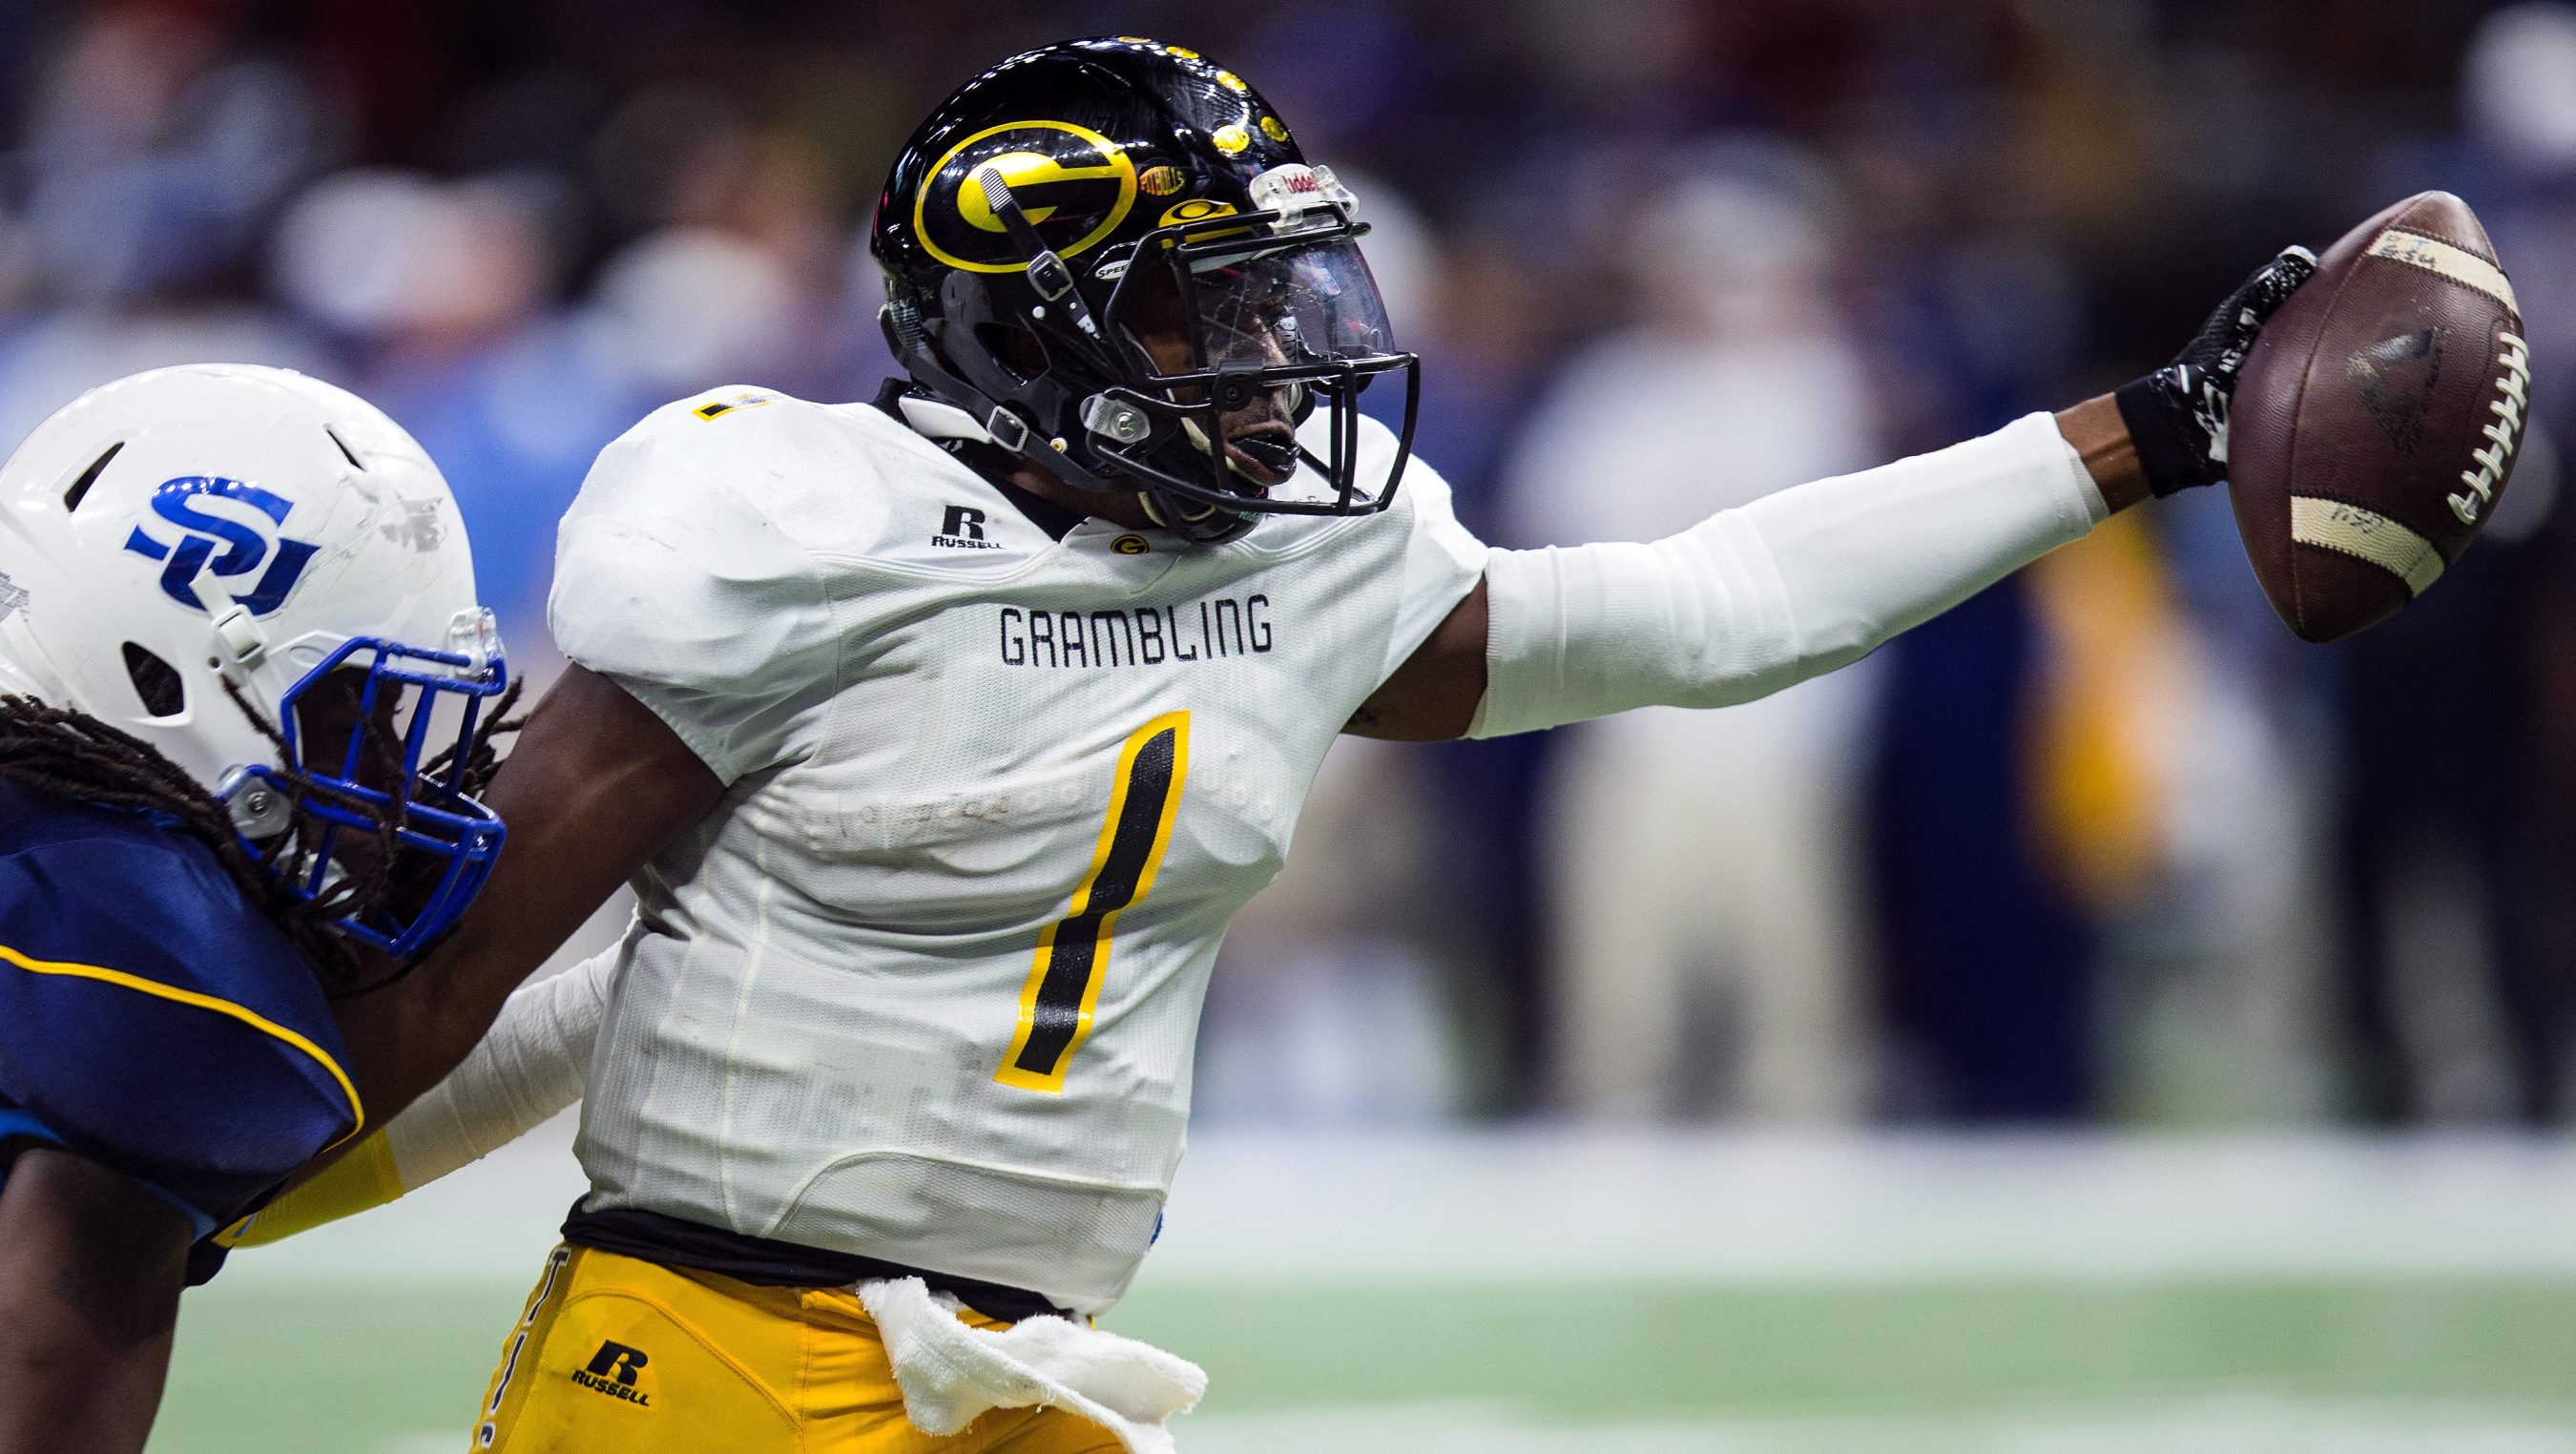 Grambling State pours on the offense in Bayou Classic ...